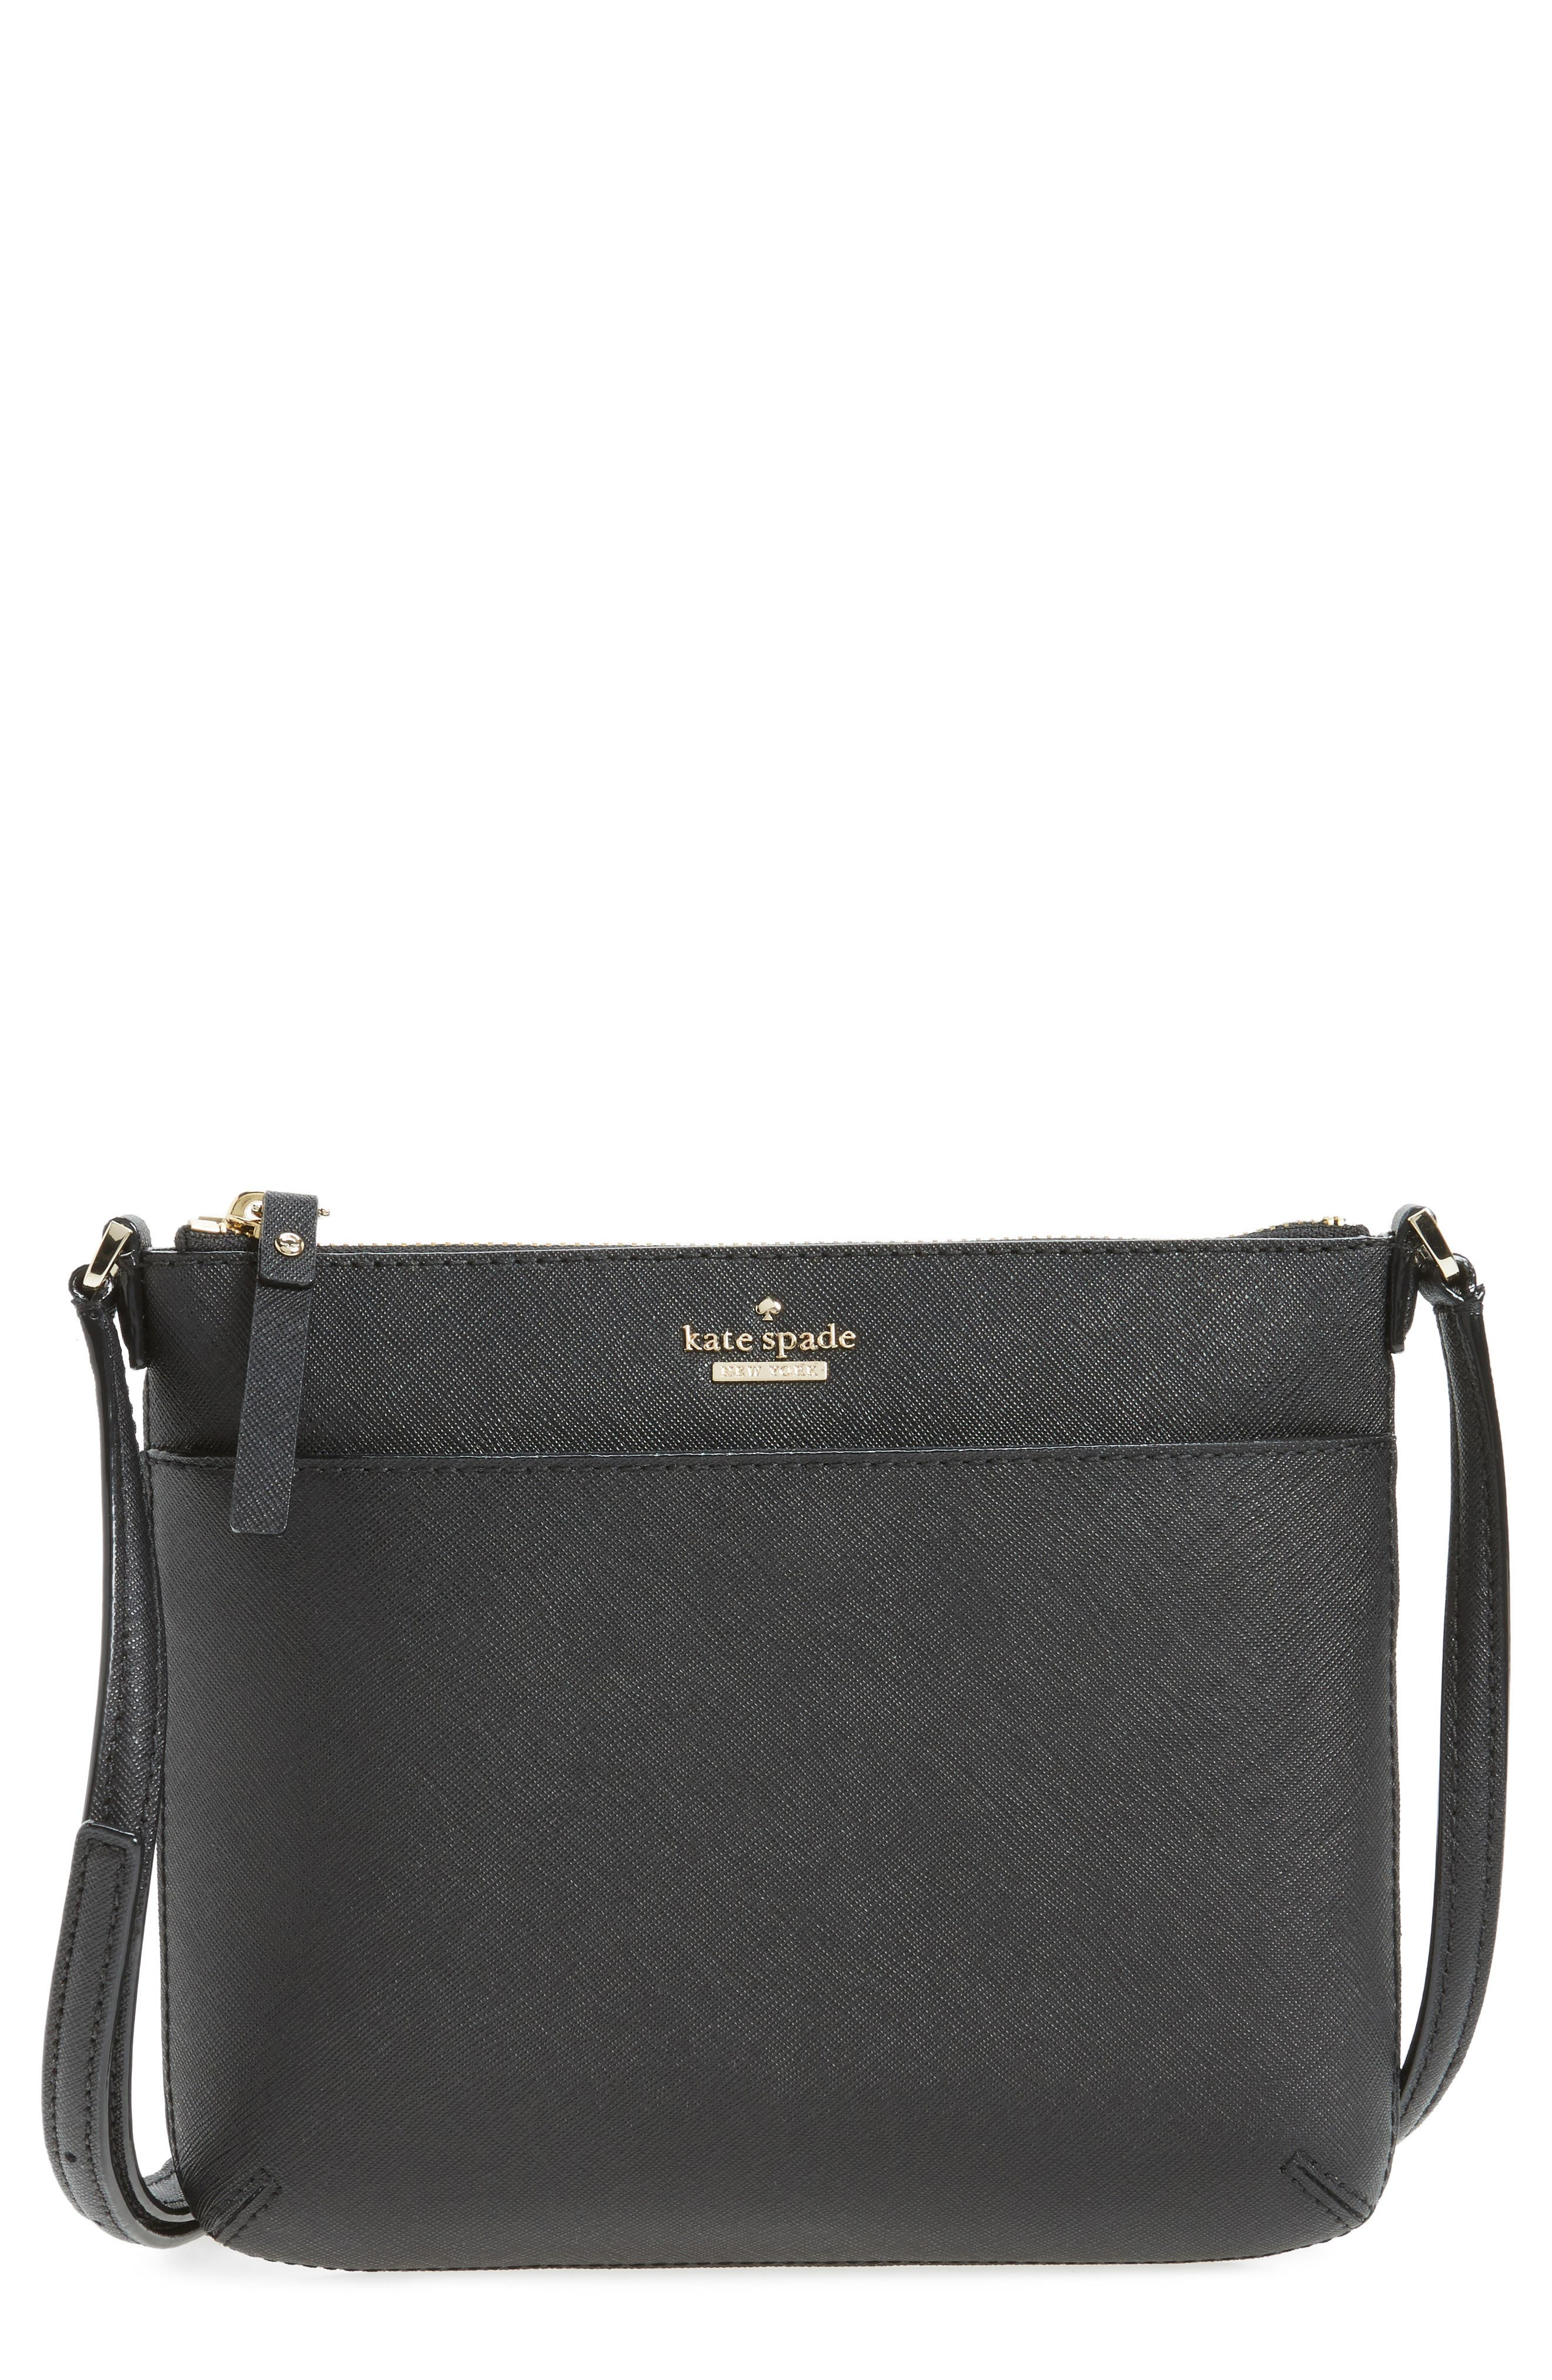 Alternate Image 1 Selected - kate spade new york cameron street - tenley leather crossbody bag